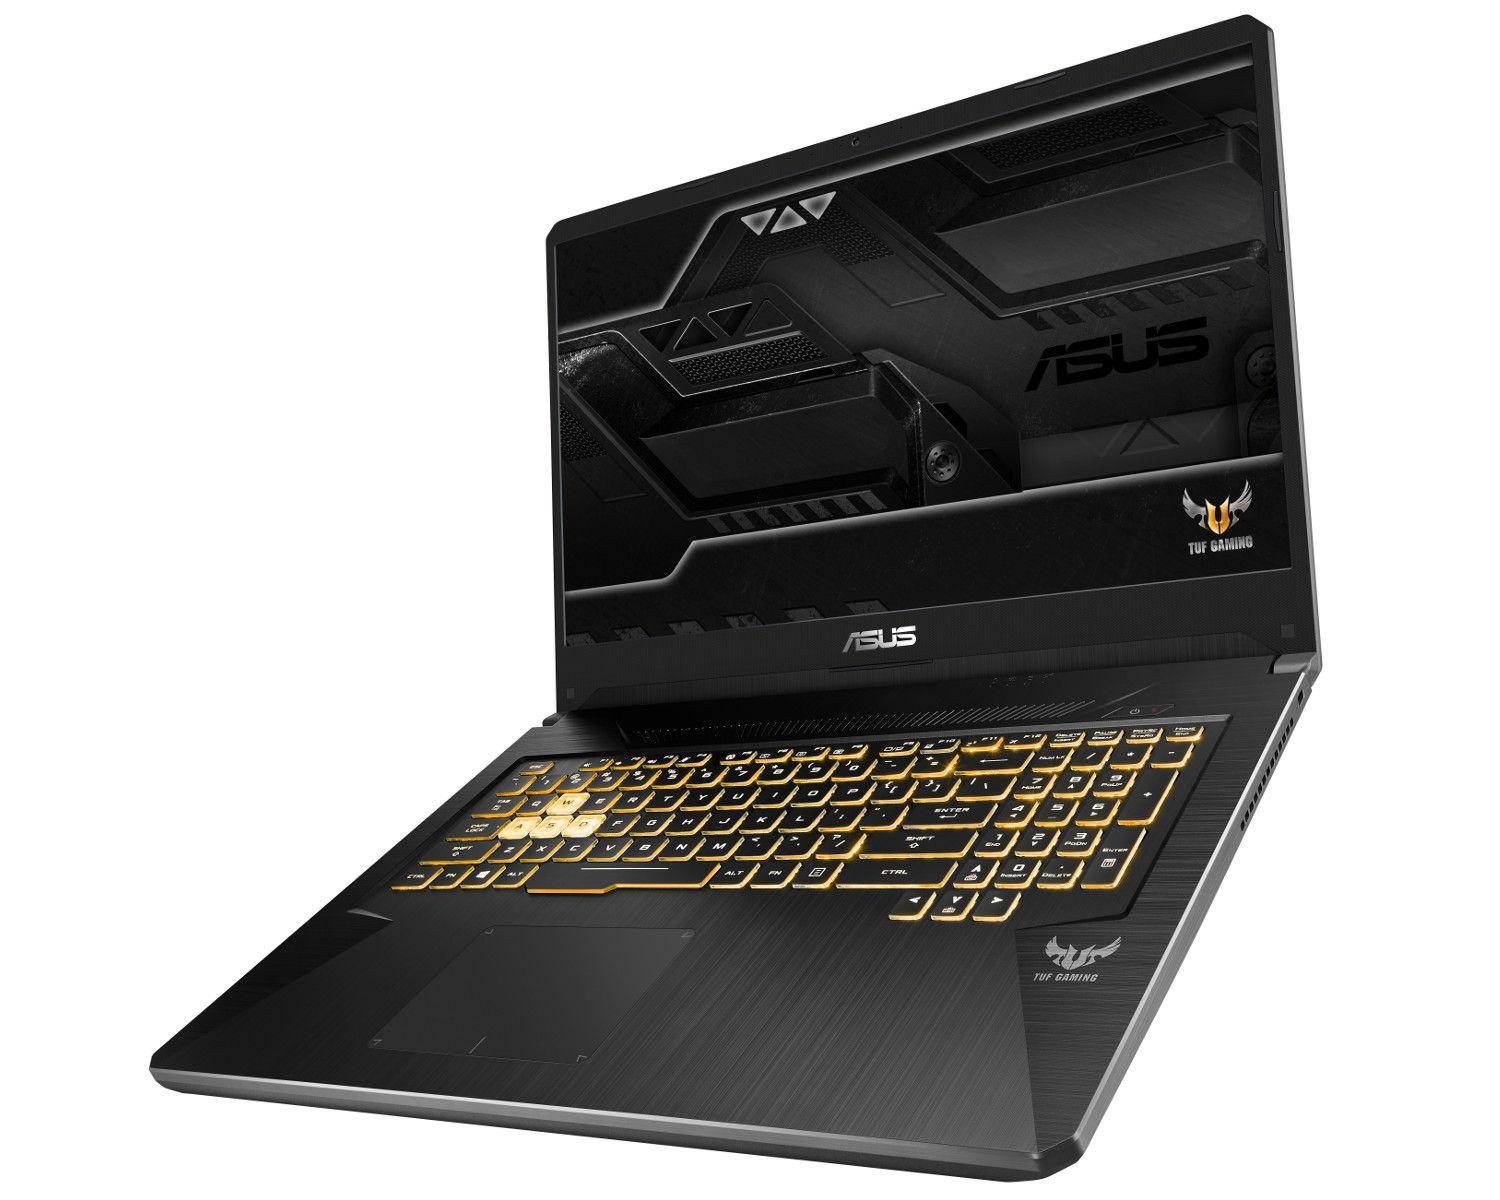 Ordinateur portable Asus TUF 765GM-EV149T Noir/Gold - GTX 1060 144 Hz - photo 2